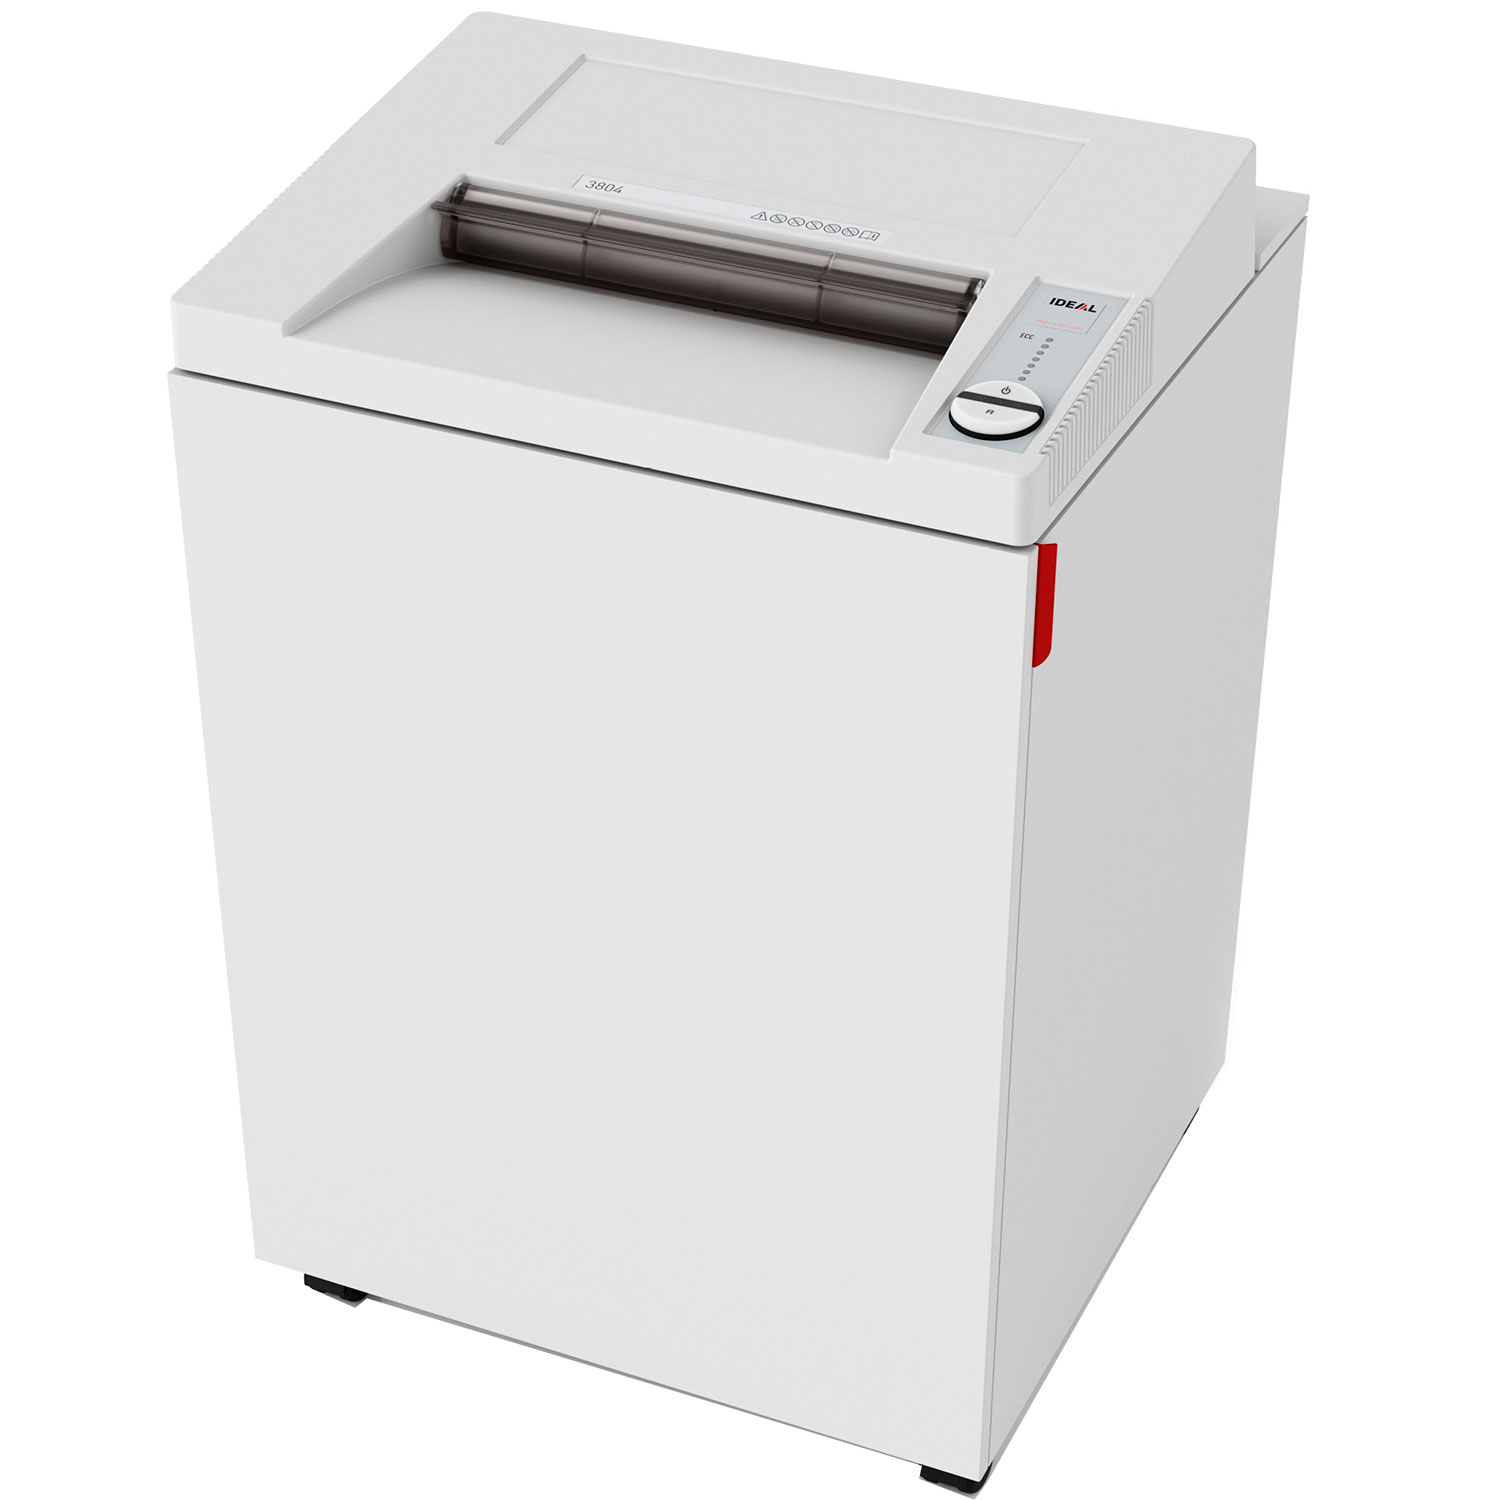 IDEAL 3804 Cross-Cut 4 x 40mm Paper Shredder